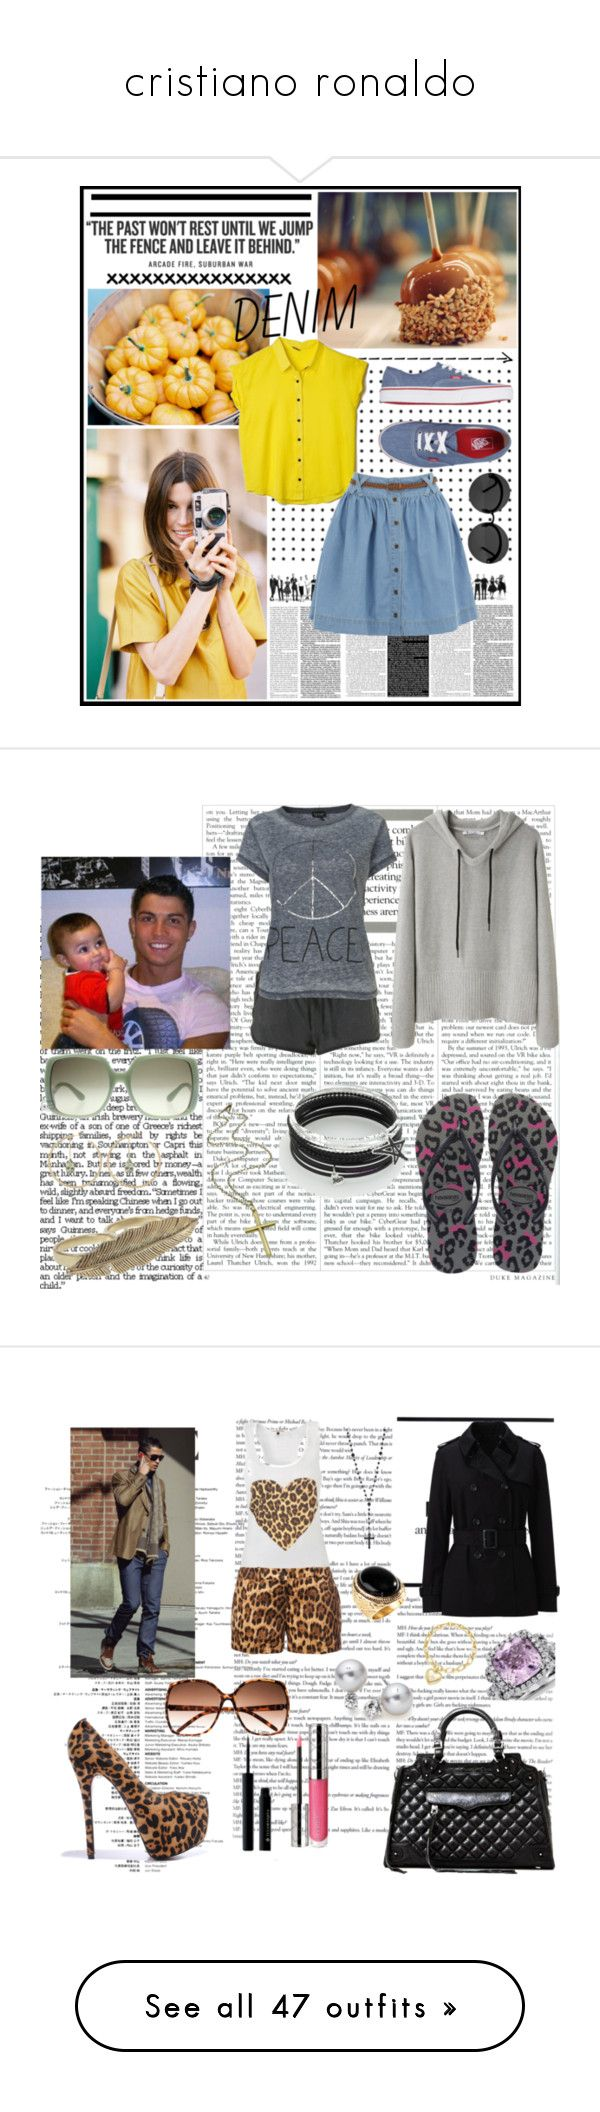 """""""cristiano ronaldo"""" by harybarbosa ❤ liked on Polyvore featuring Vans, Rebecca Minkoff, Le Specs, Oasis, pleated skirts, denim, blouses, granny glasses, sneakers and Topshop"""